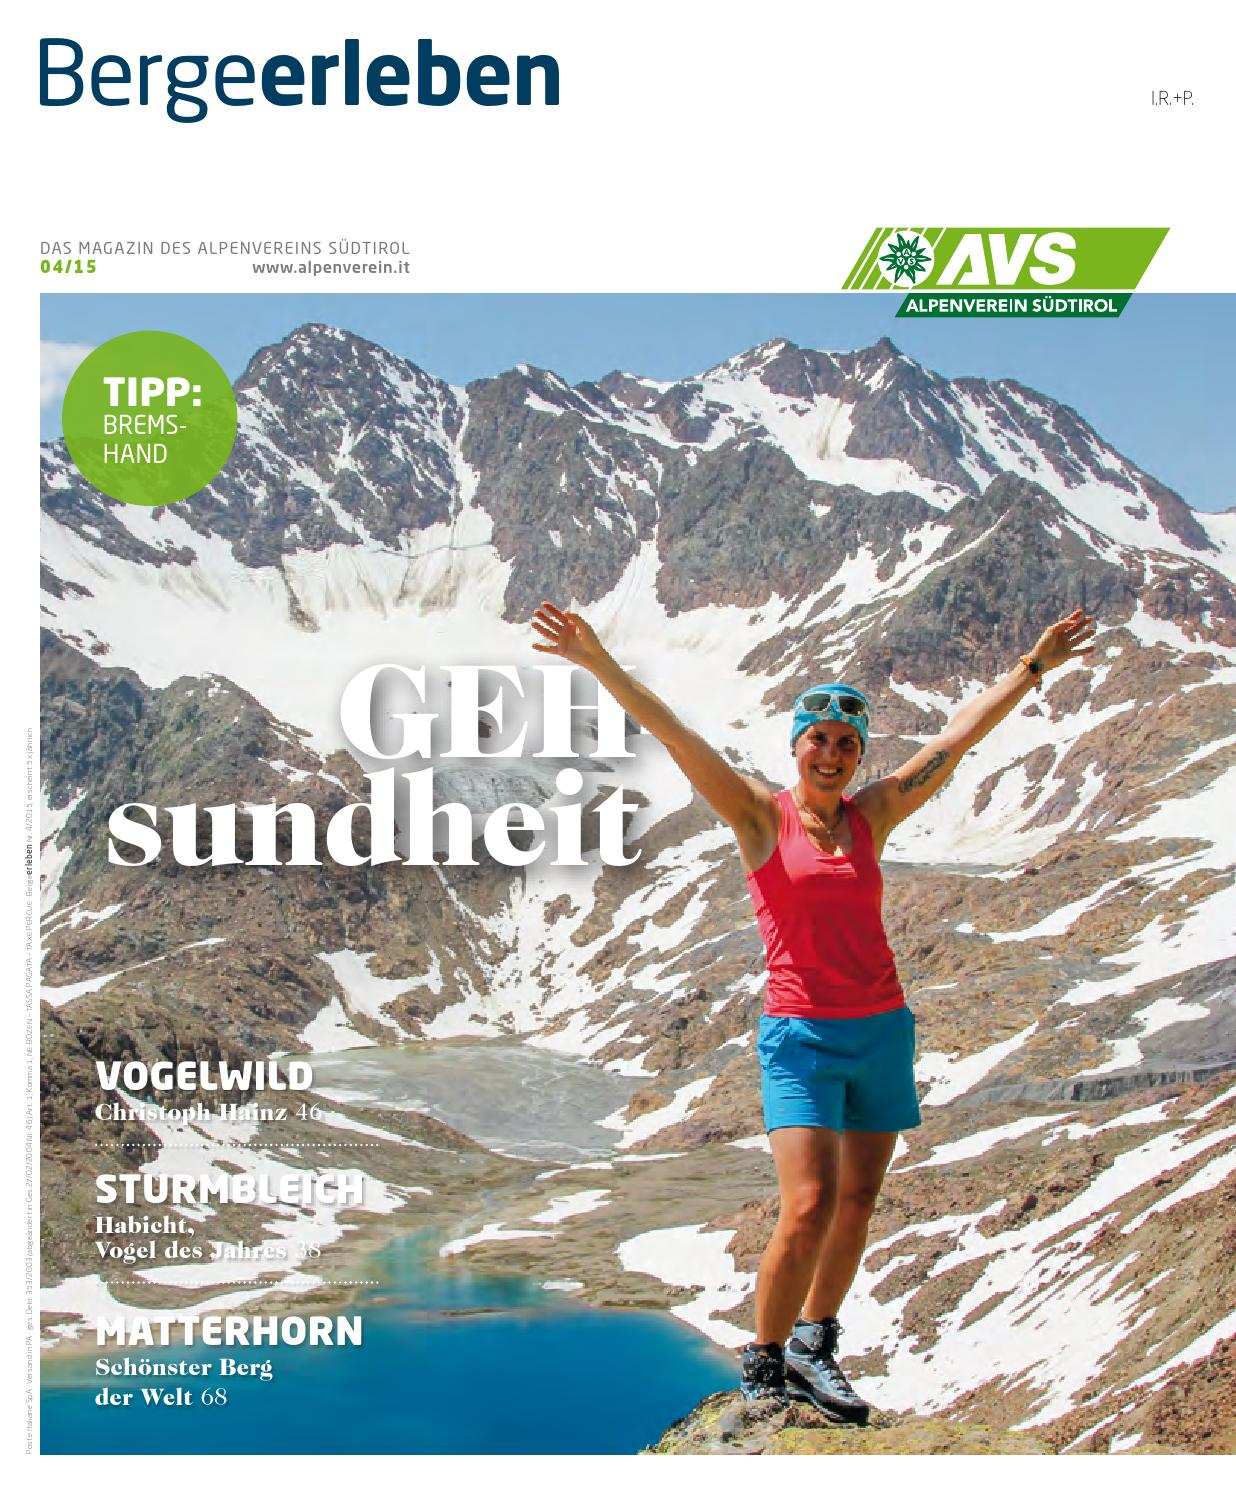 Bergeerleben AVS Magazin September 2015 by Alpenverein